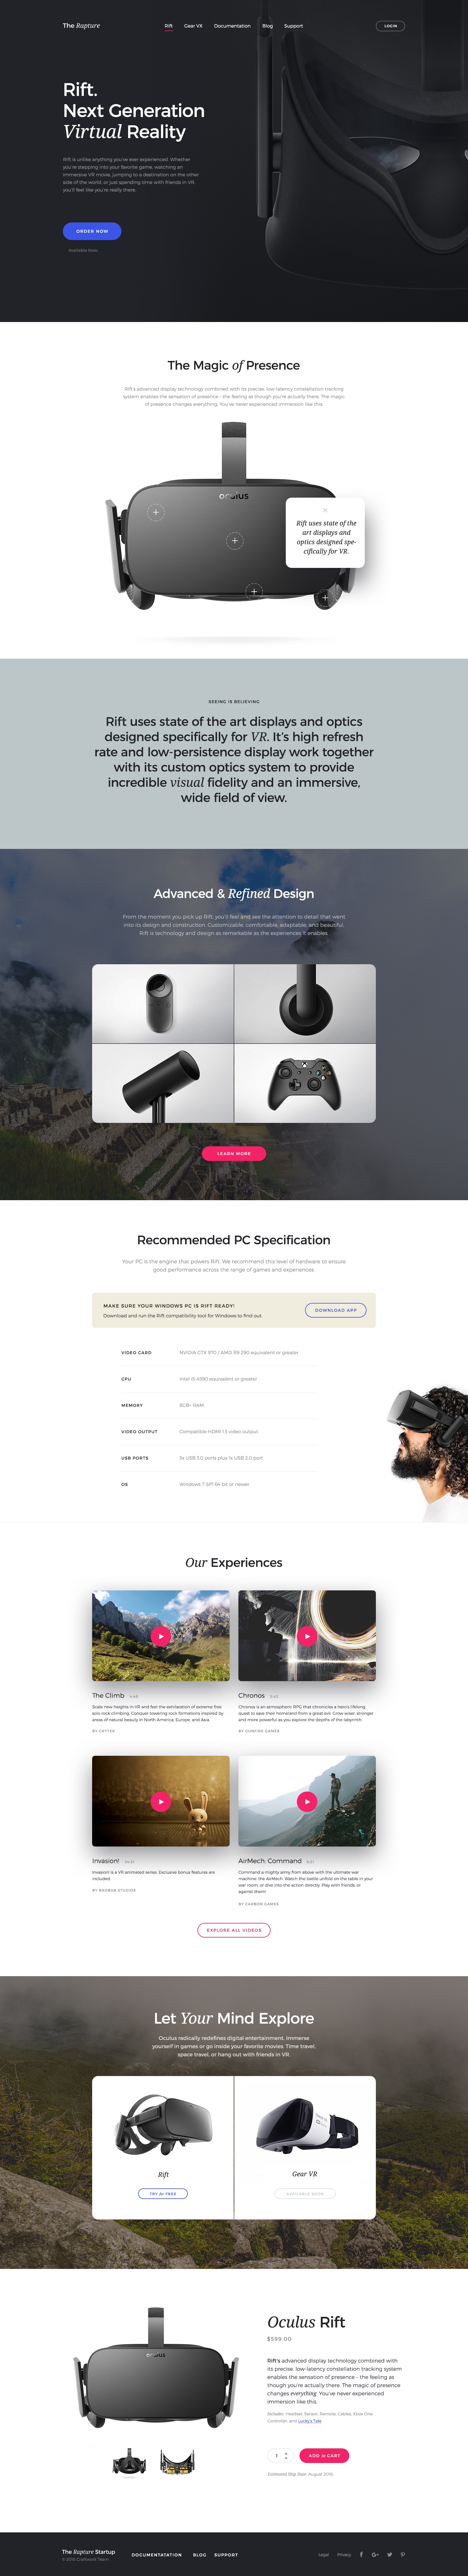 15 homepage product